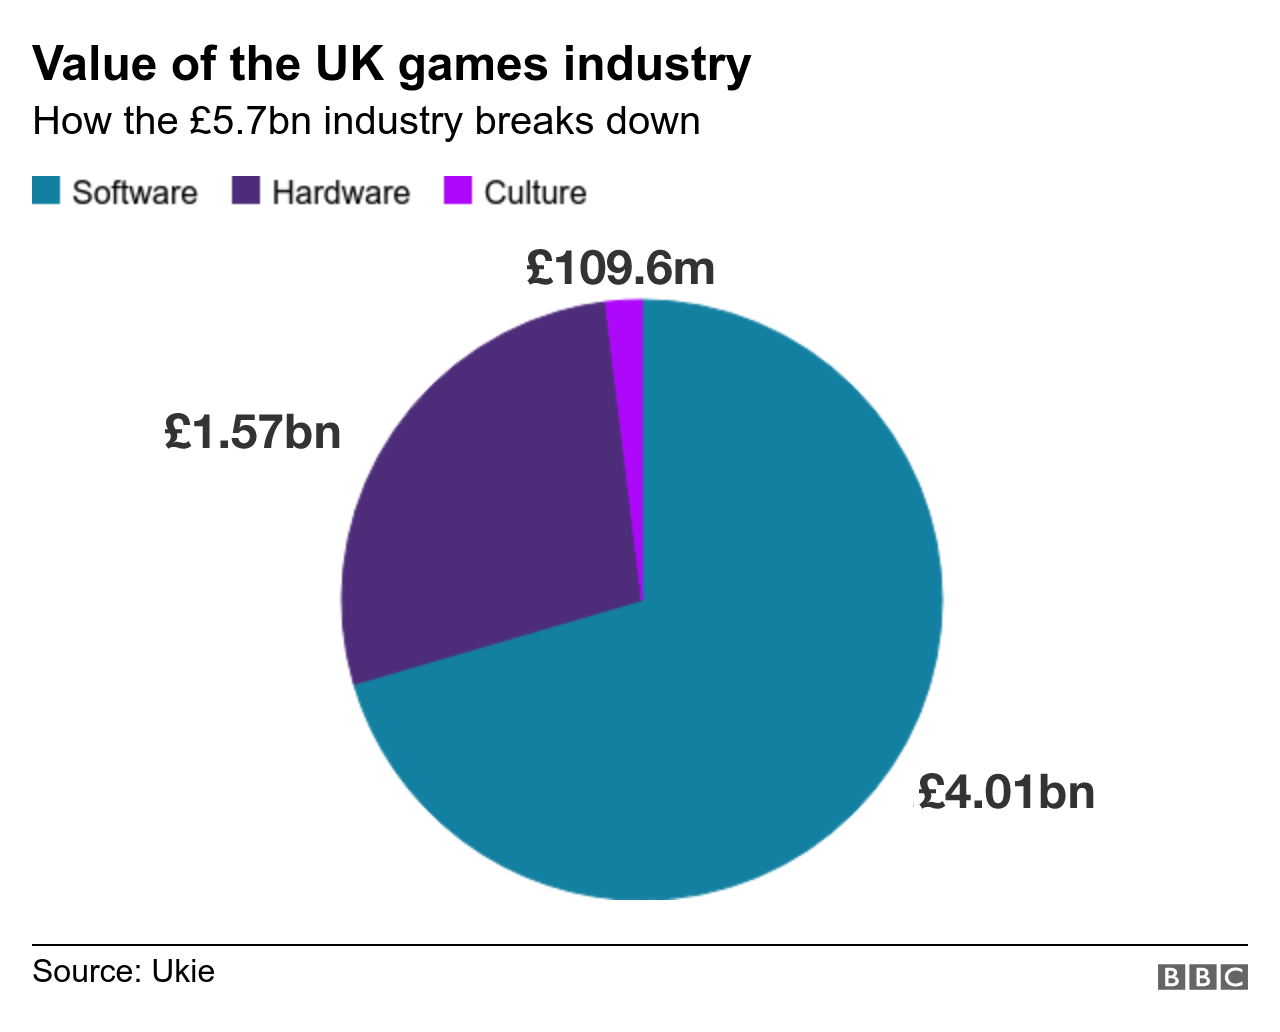 Graphic: Breakdown of games industry by market value of each sector